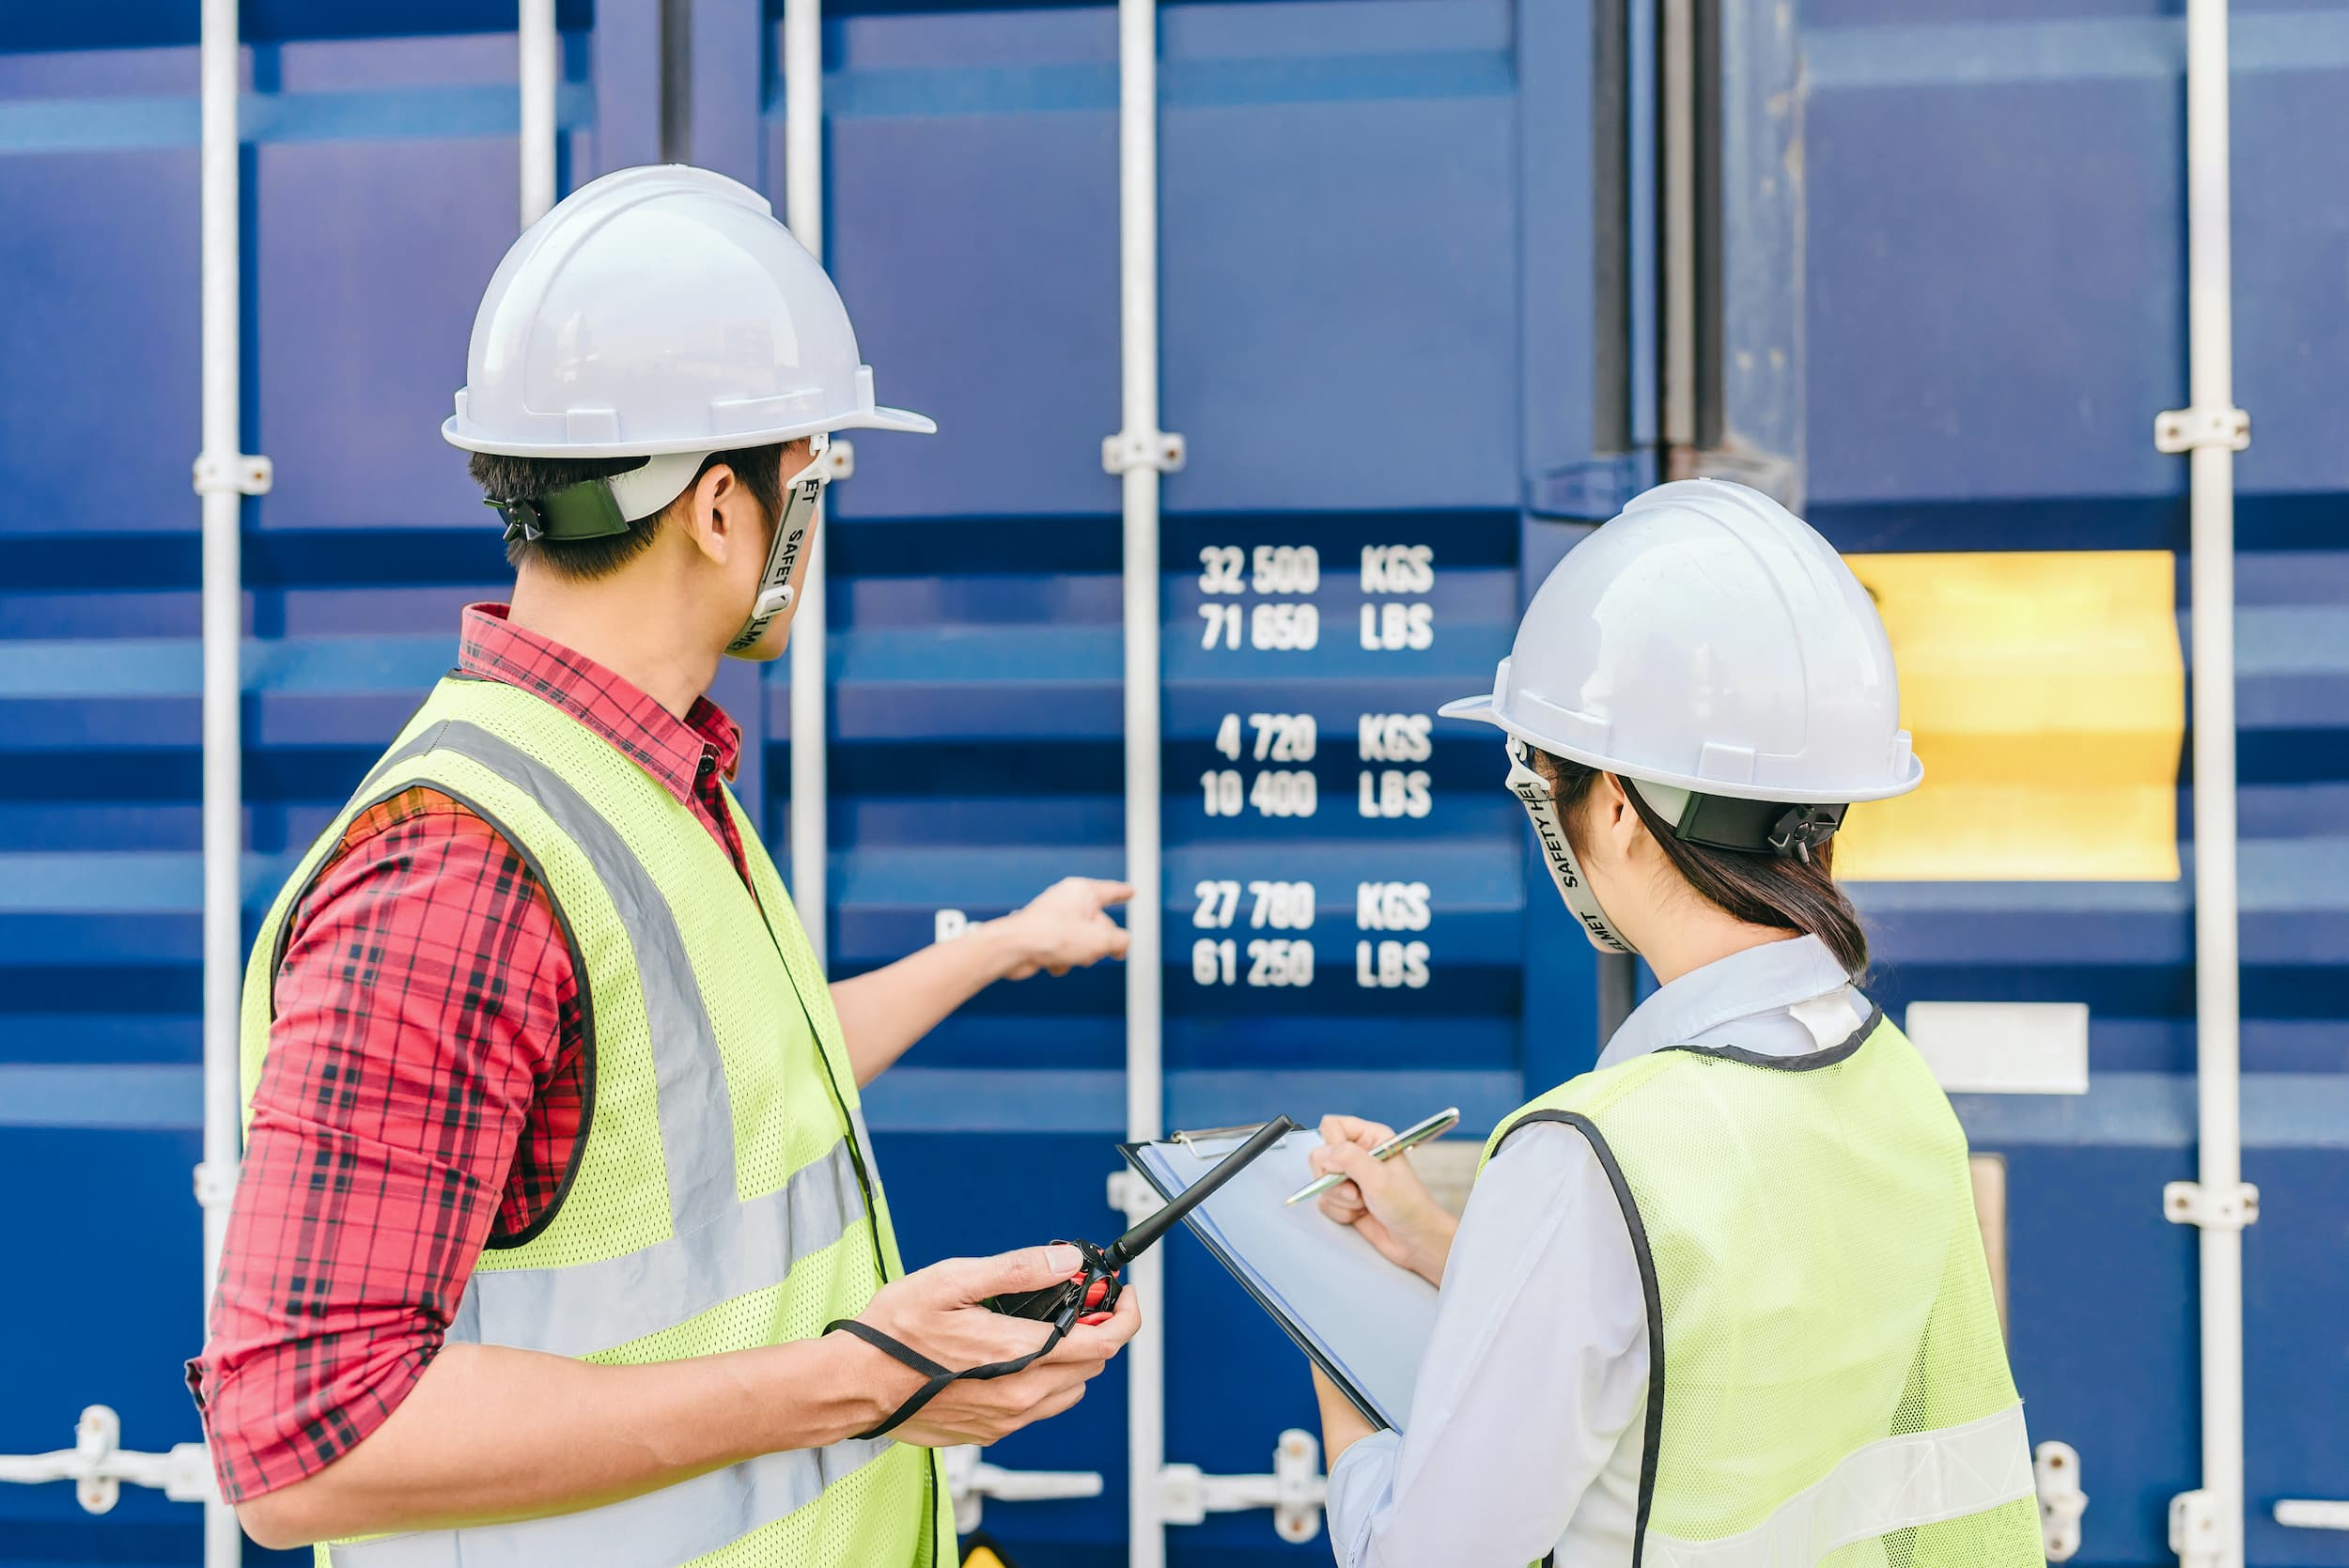 Foreman and staff checking shipping container details